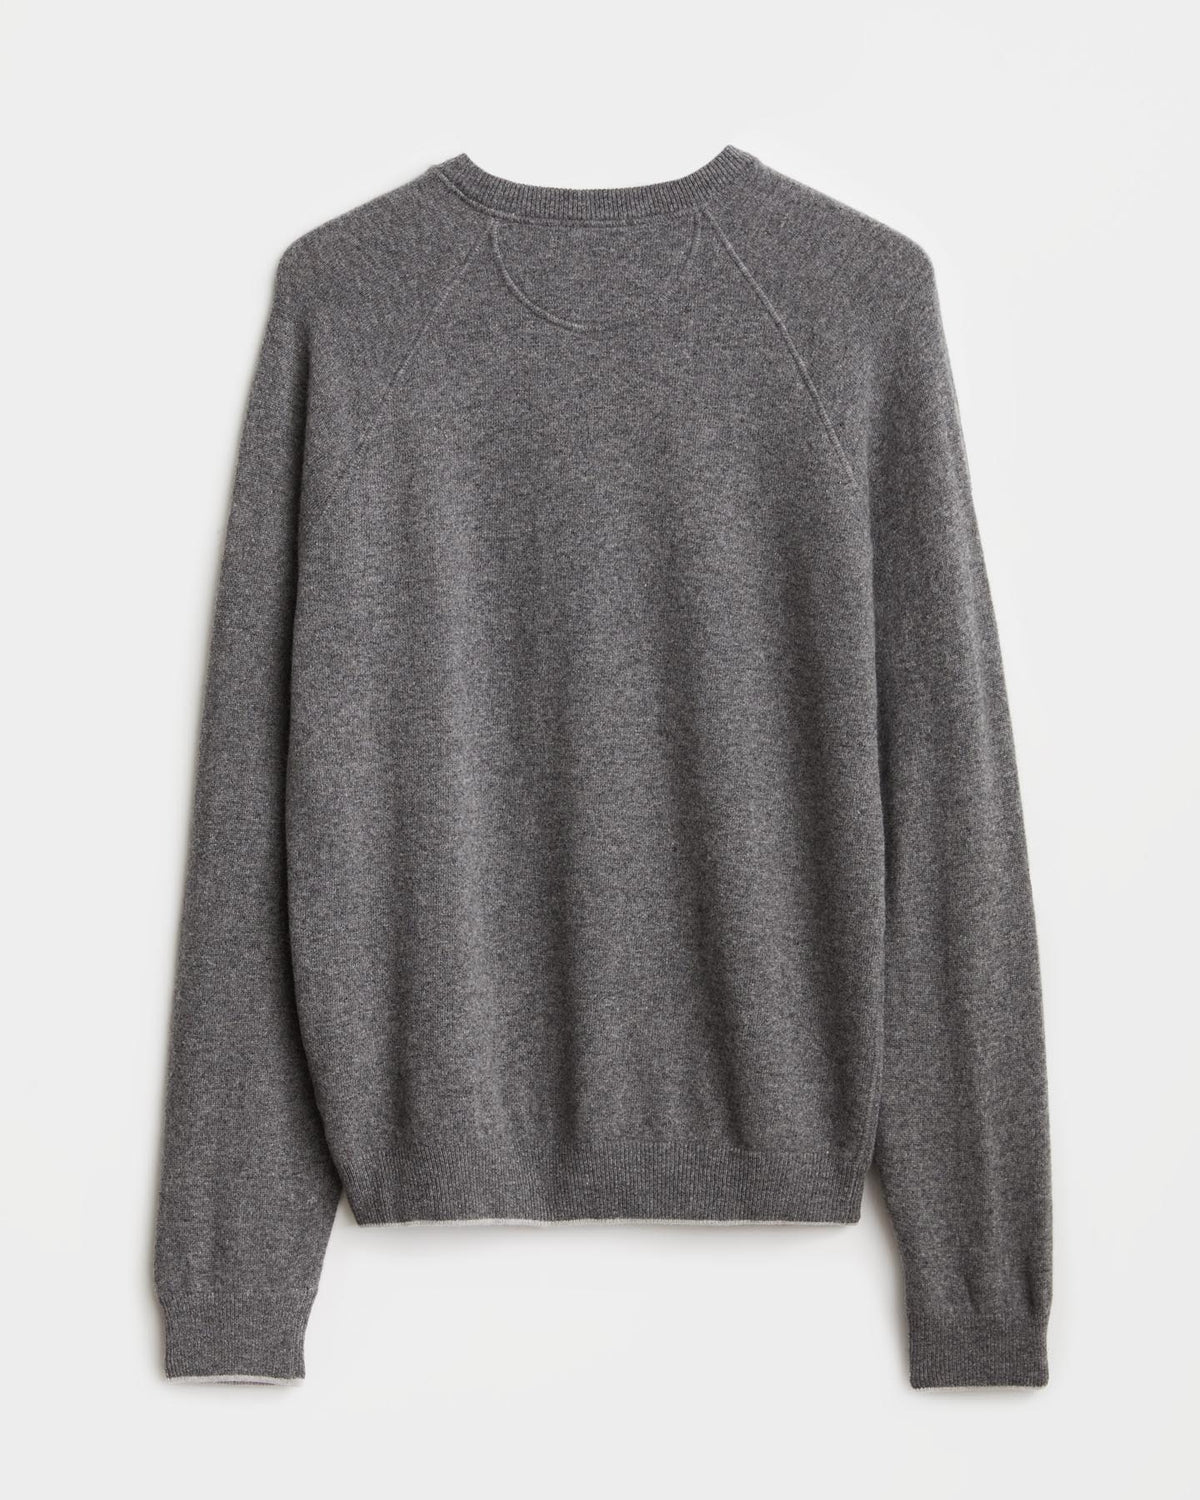 Cadorna Wool and Cashmere Unisex Sweater